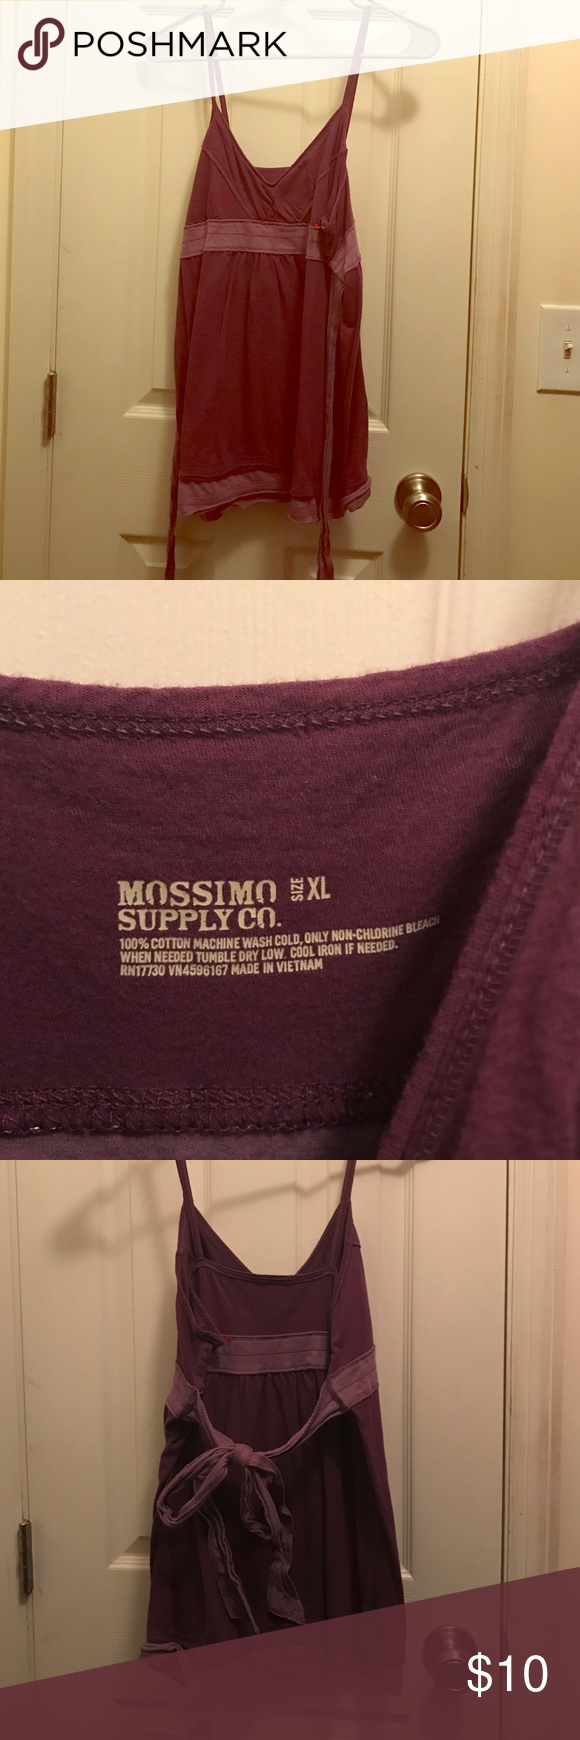 Mossimo Supply Co. purple tie back tank Mossimo Supply Co. purple tie back tank. Size XL. Never worn but tags have been removed. Mossimo Supply Co Tops Tank Tops